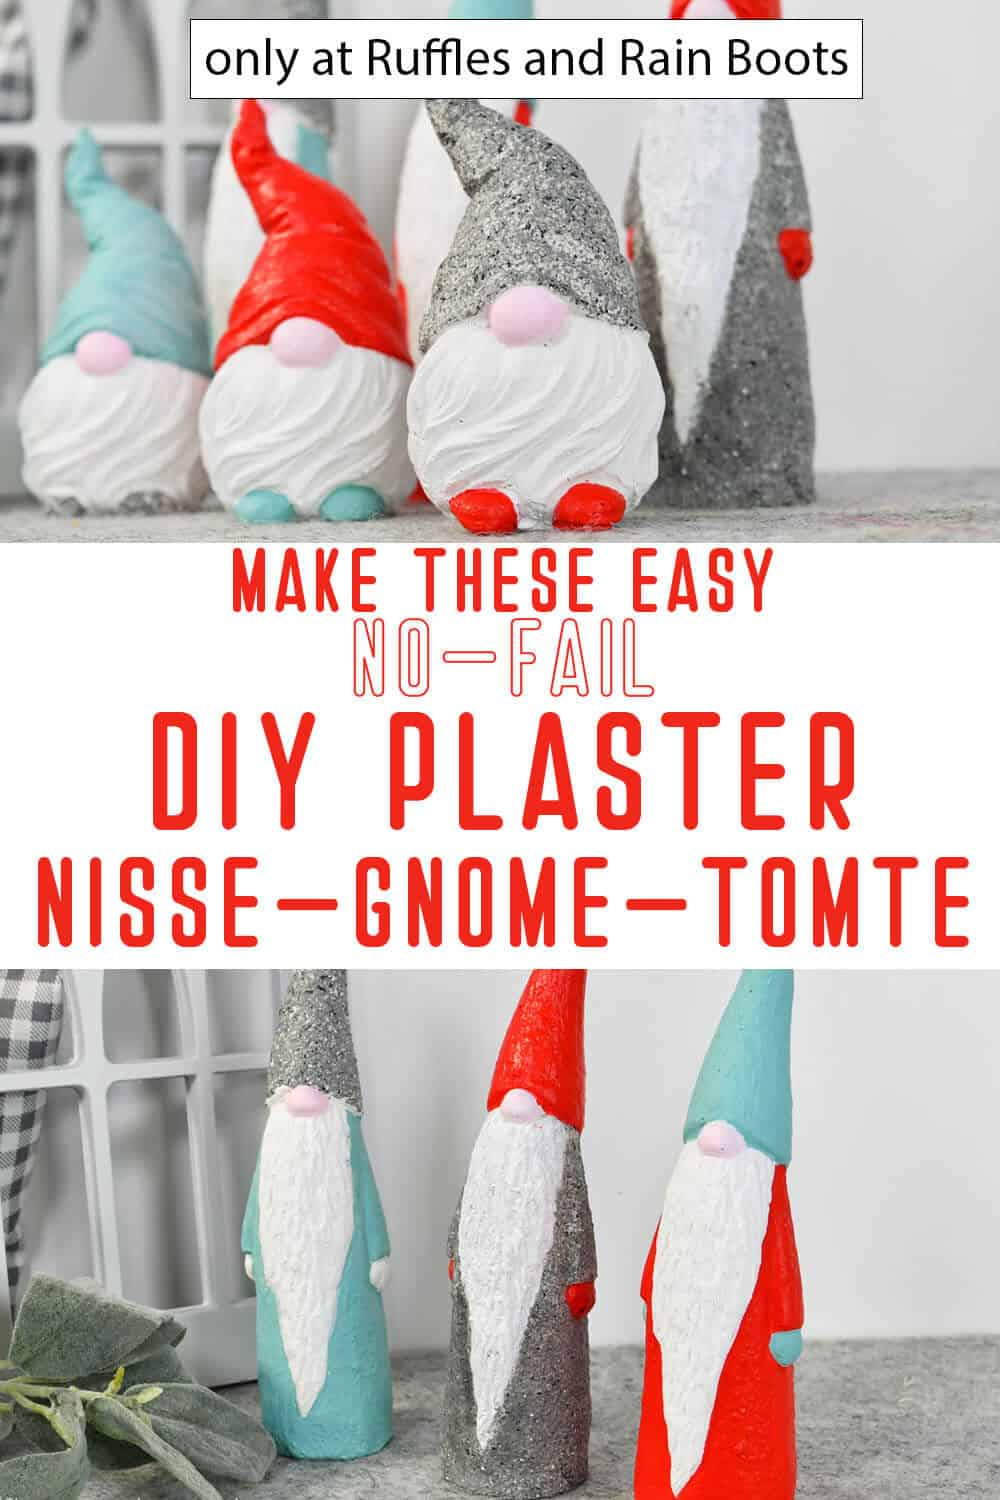 photo collage of plaster gnome molded with text which reads make these easy no-fail diy plaster nisse gnome tomte